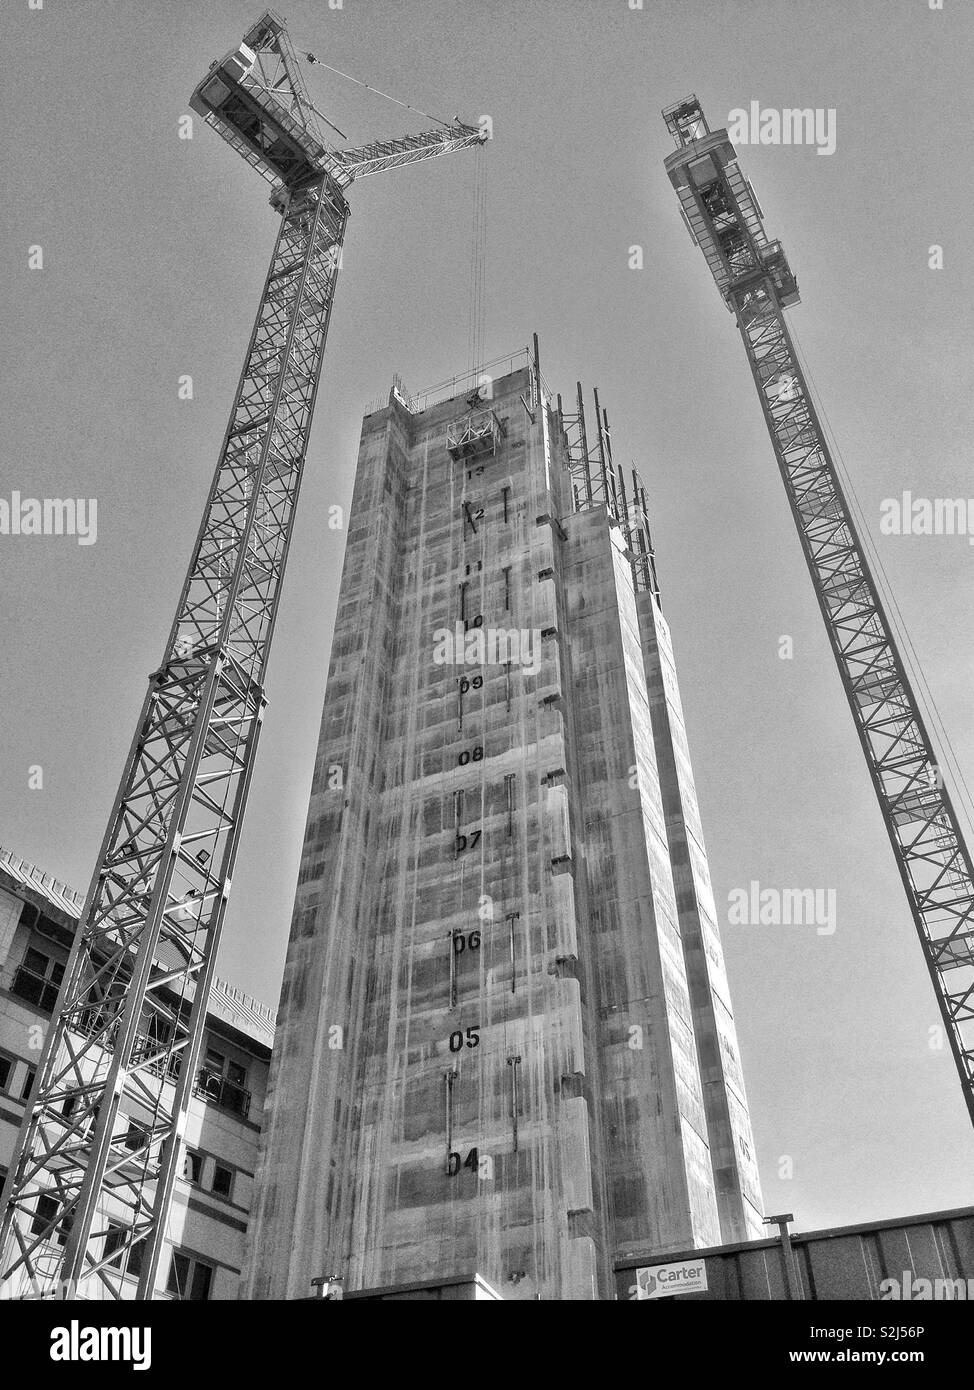 Concrete new build core and cranes on a building site in the City of London, England, UK. - Stock Image